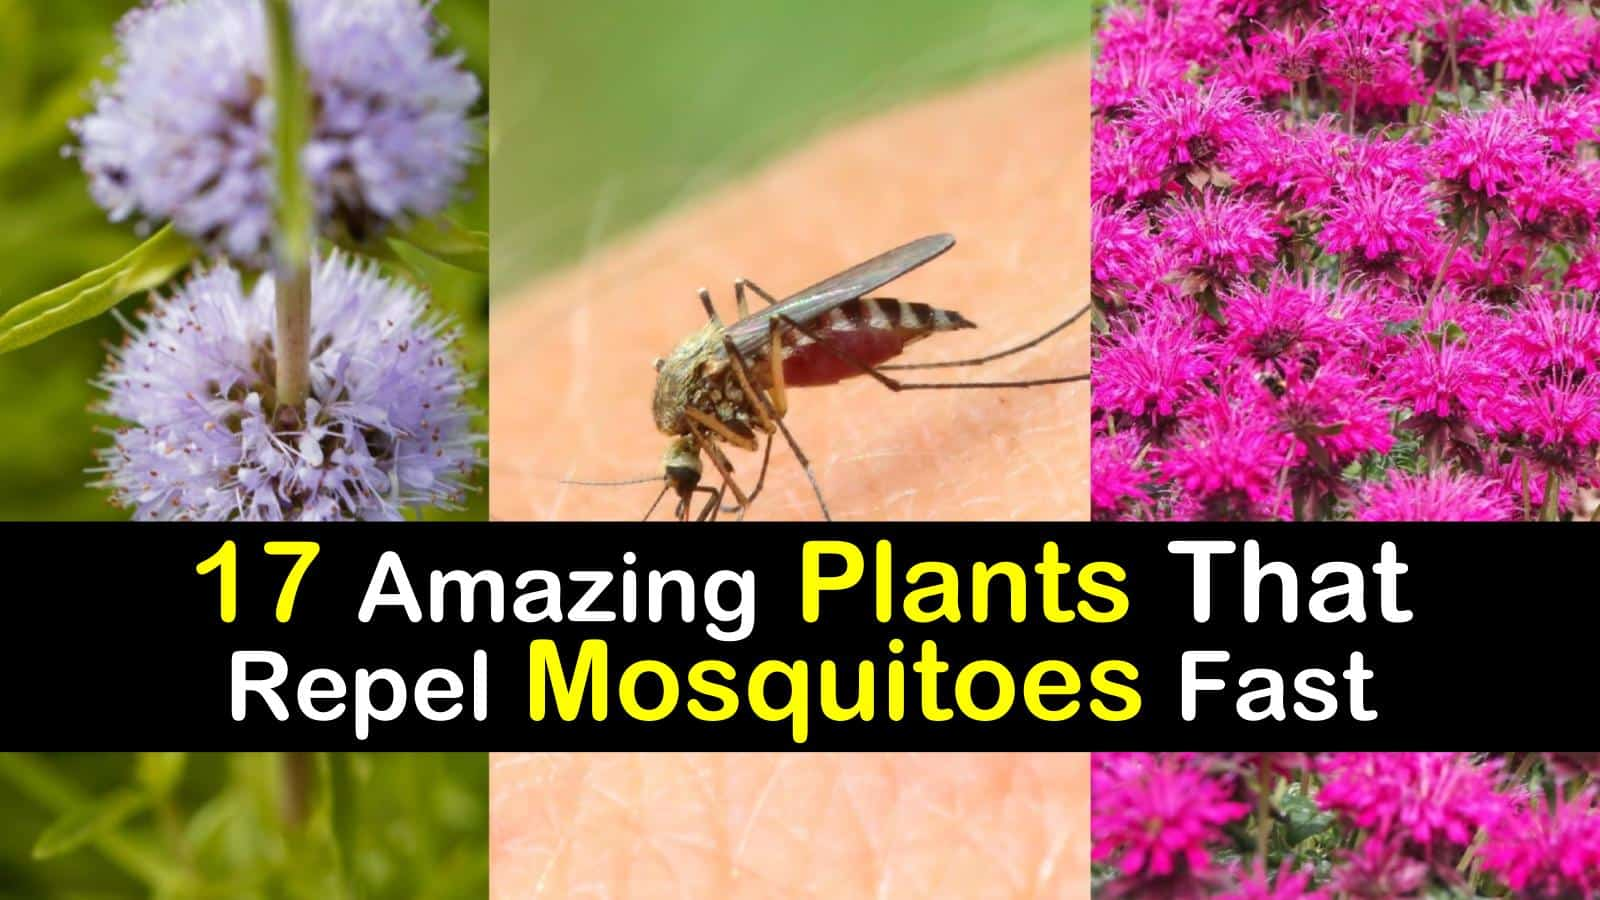 plants that repel mosquitoes titilimg1